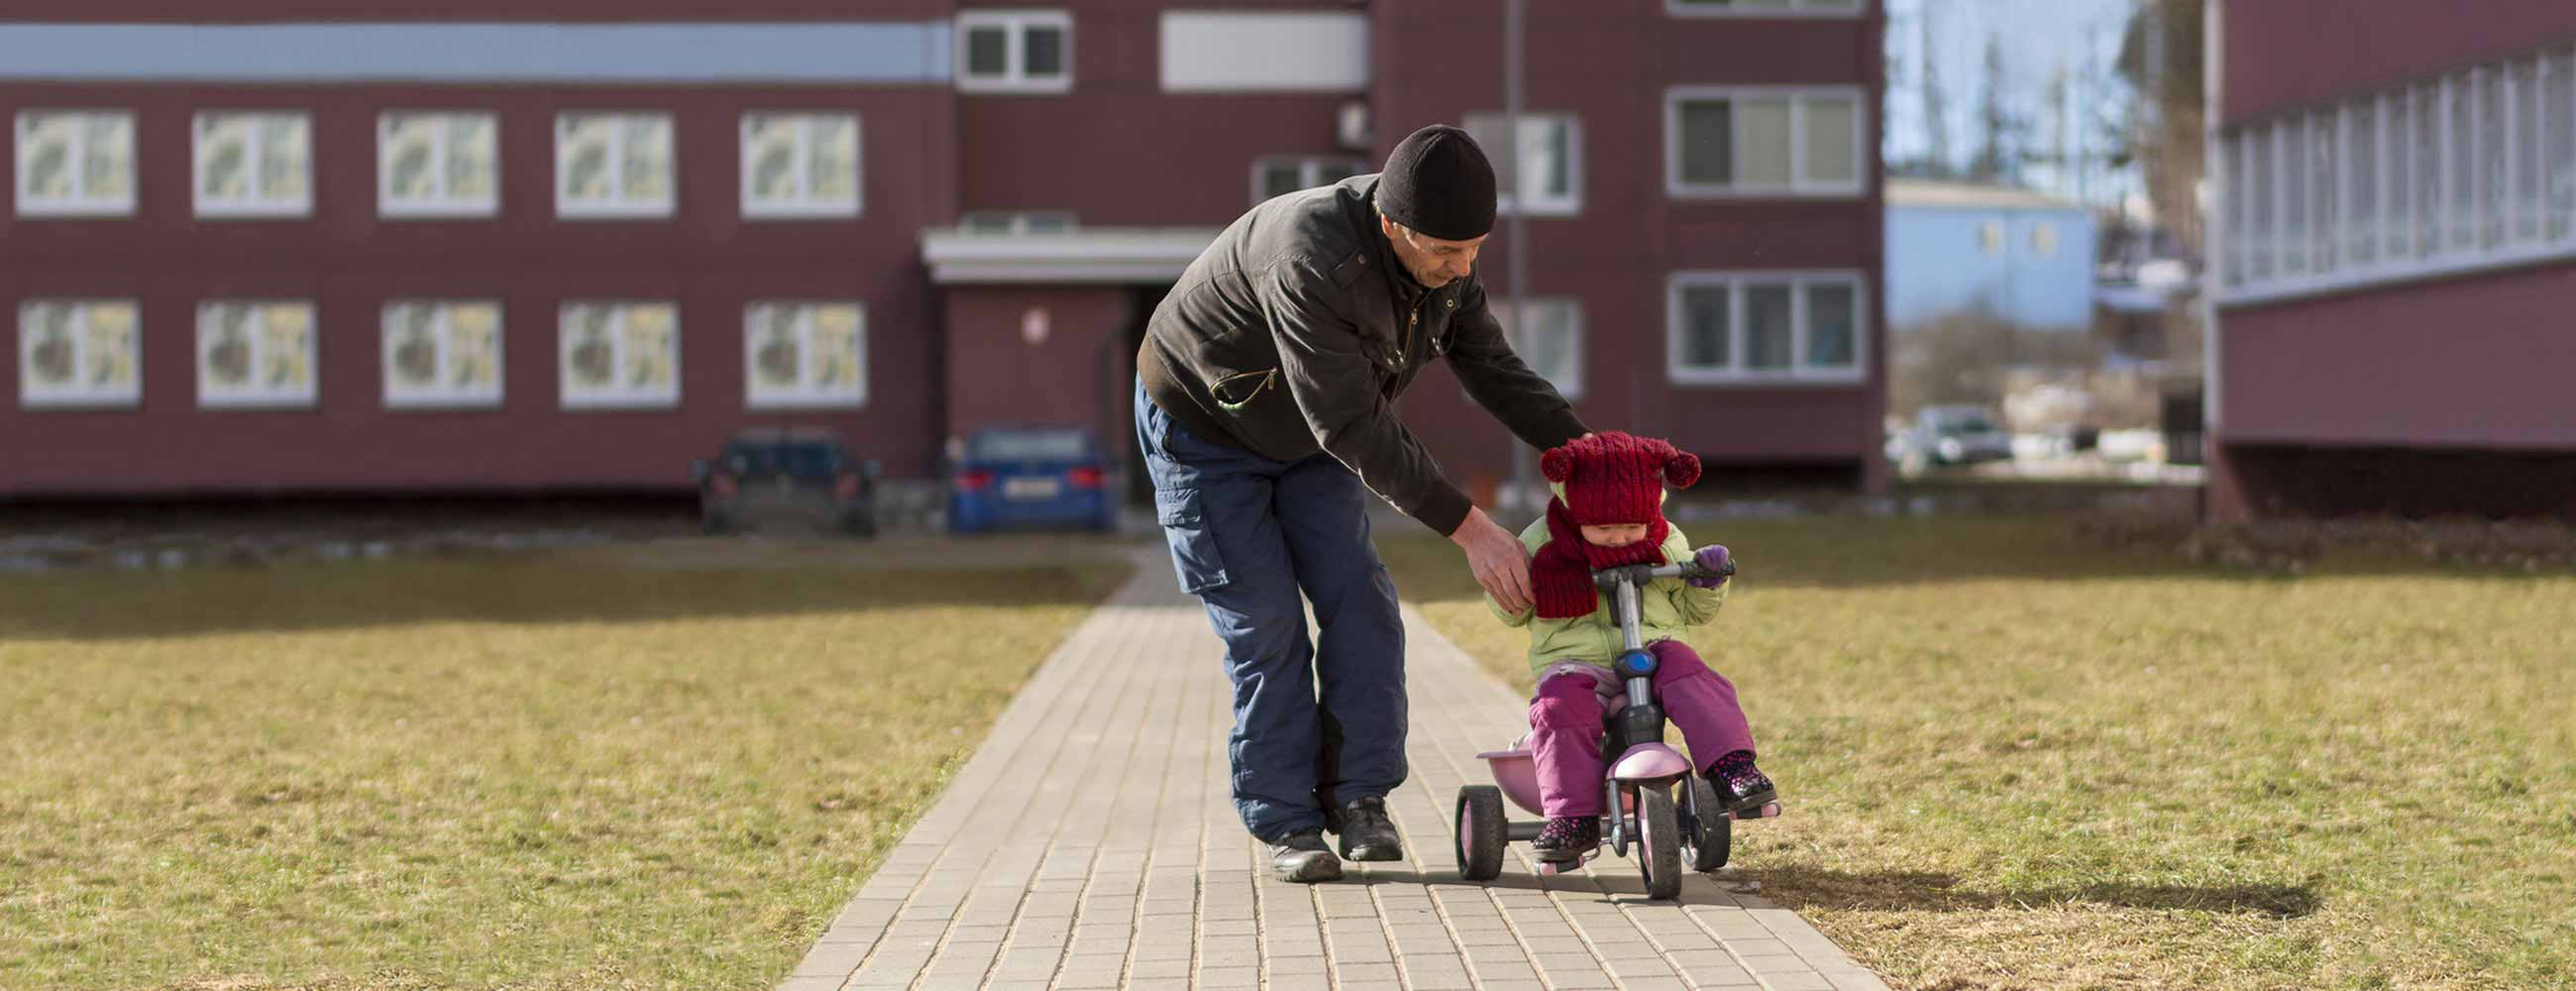 A man teaching his young child how to ride a tricycle out in front of a housing complex.